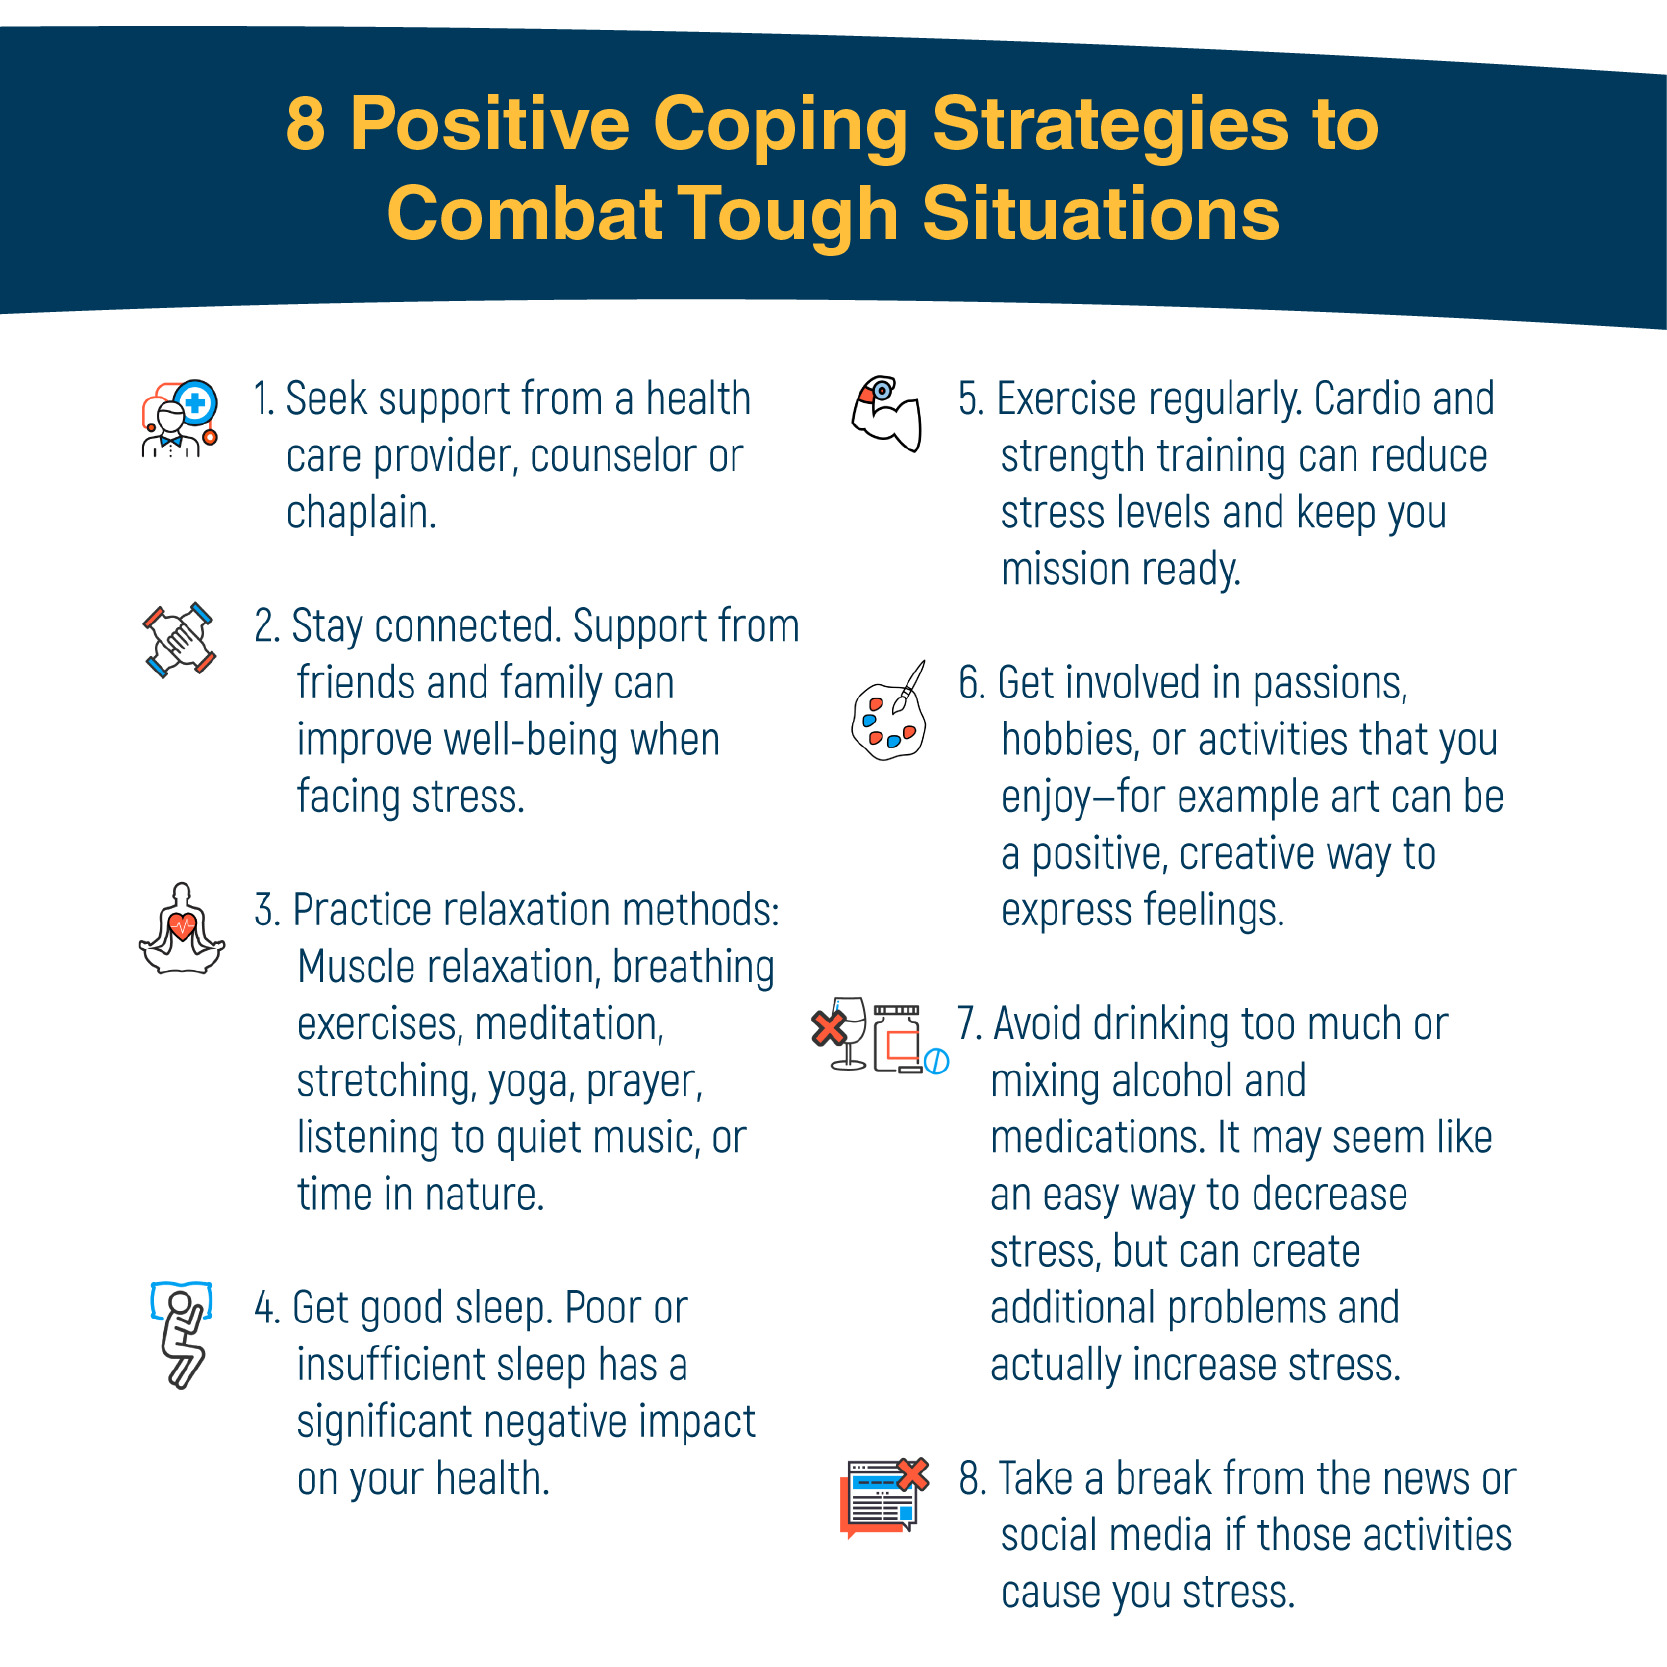 8 Positive Coping Strategies - High Resolution